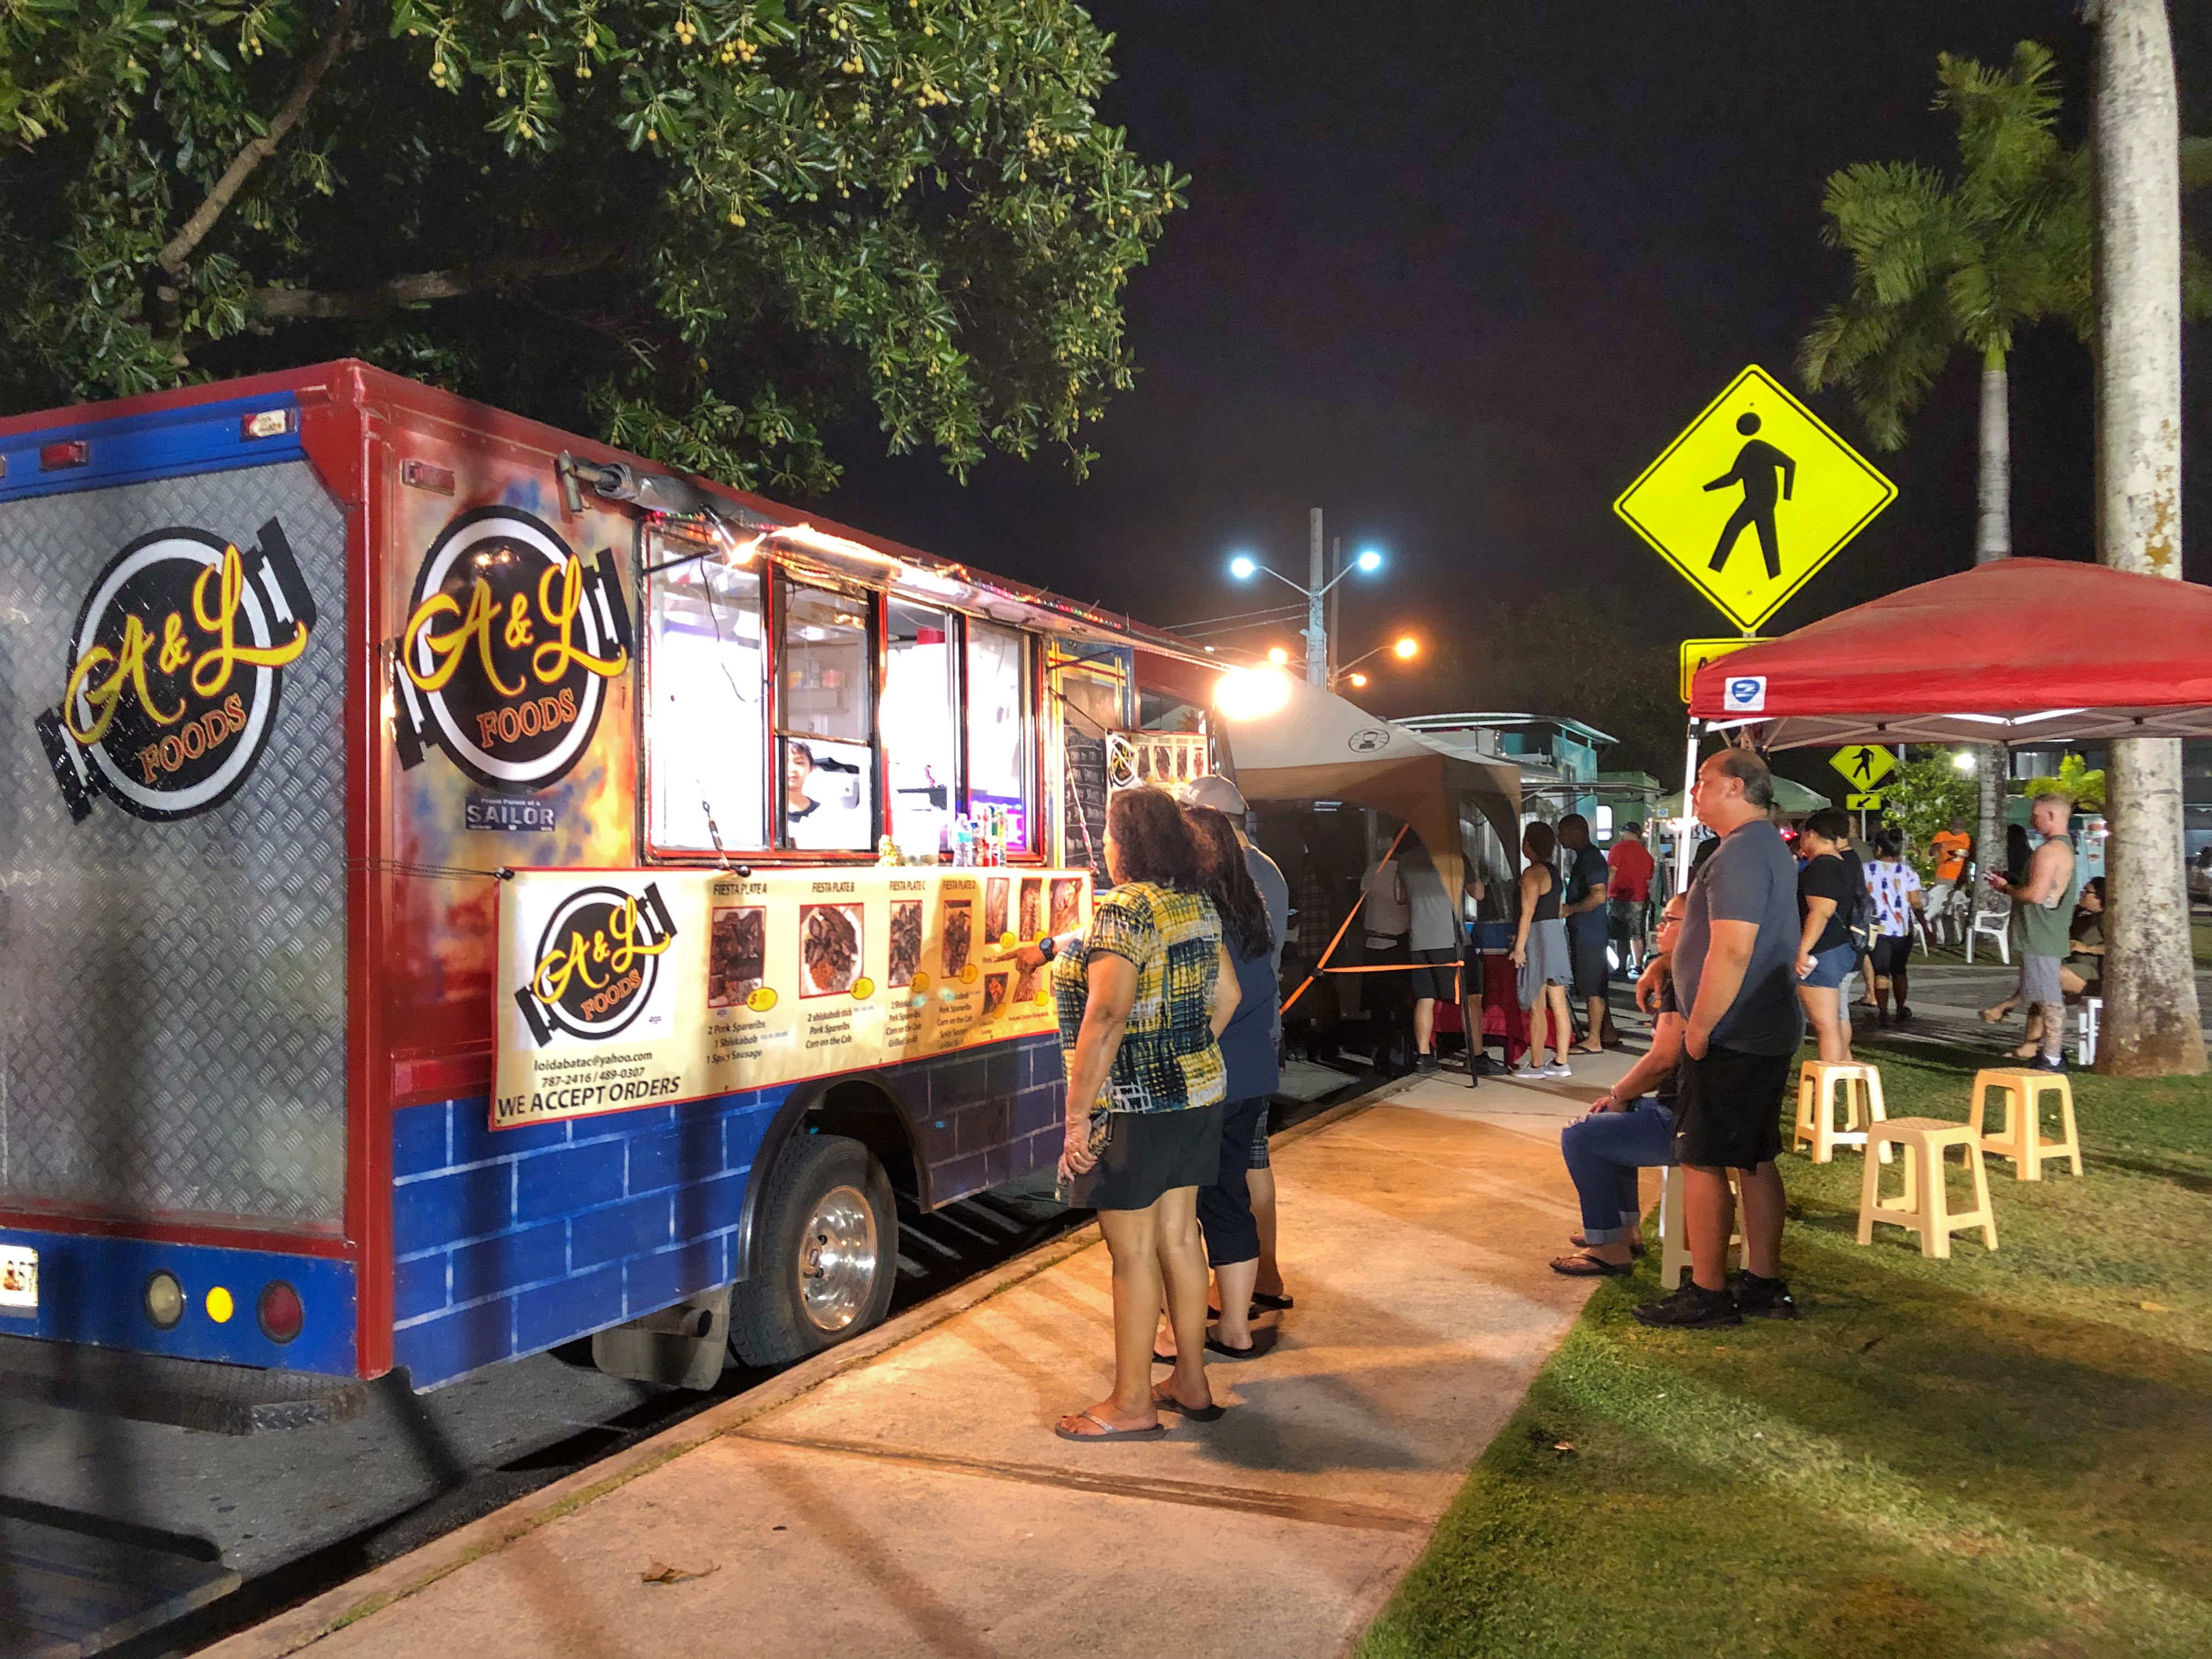 Instaguam Thursday Nights With The Guam Food Trucks